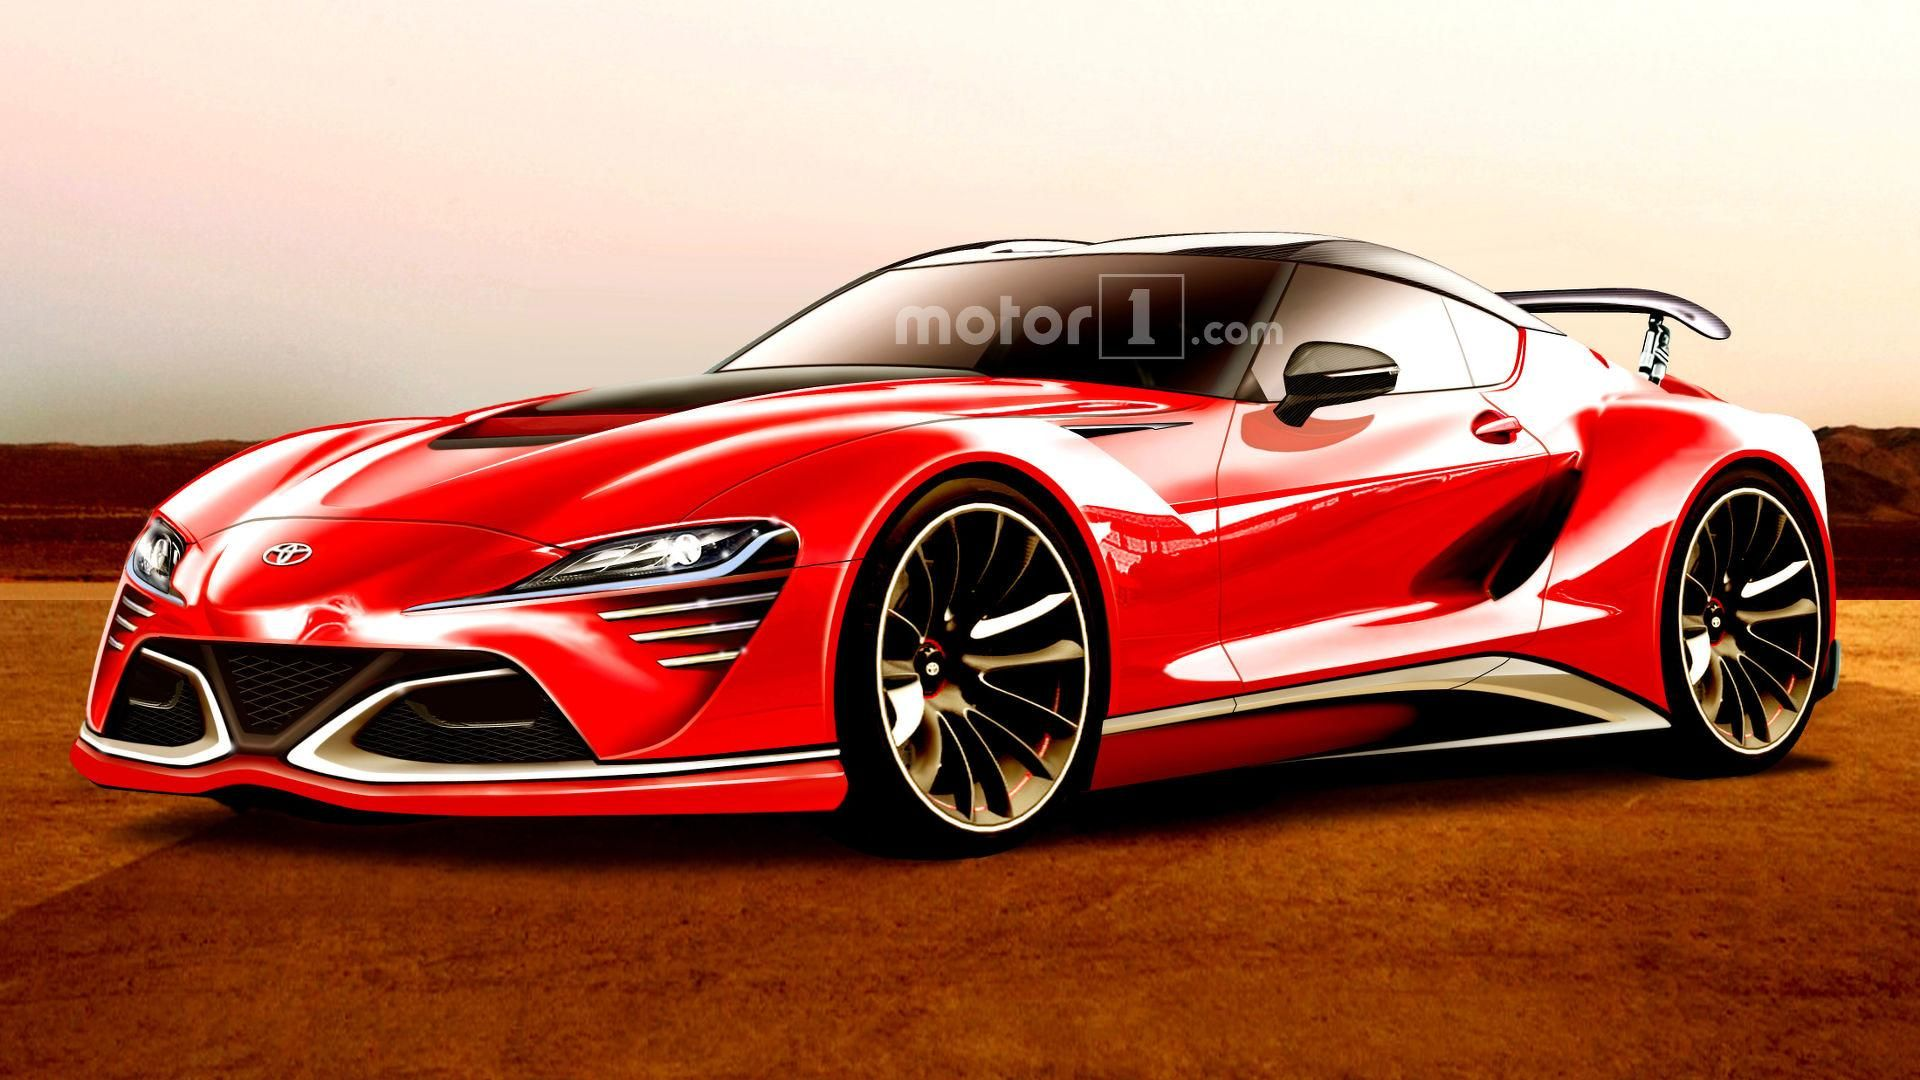 The Toyota Supra Nissan 390Z and new Mazda RX 9 will reportedly